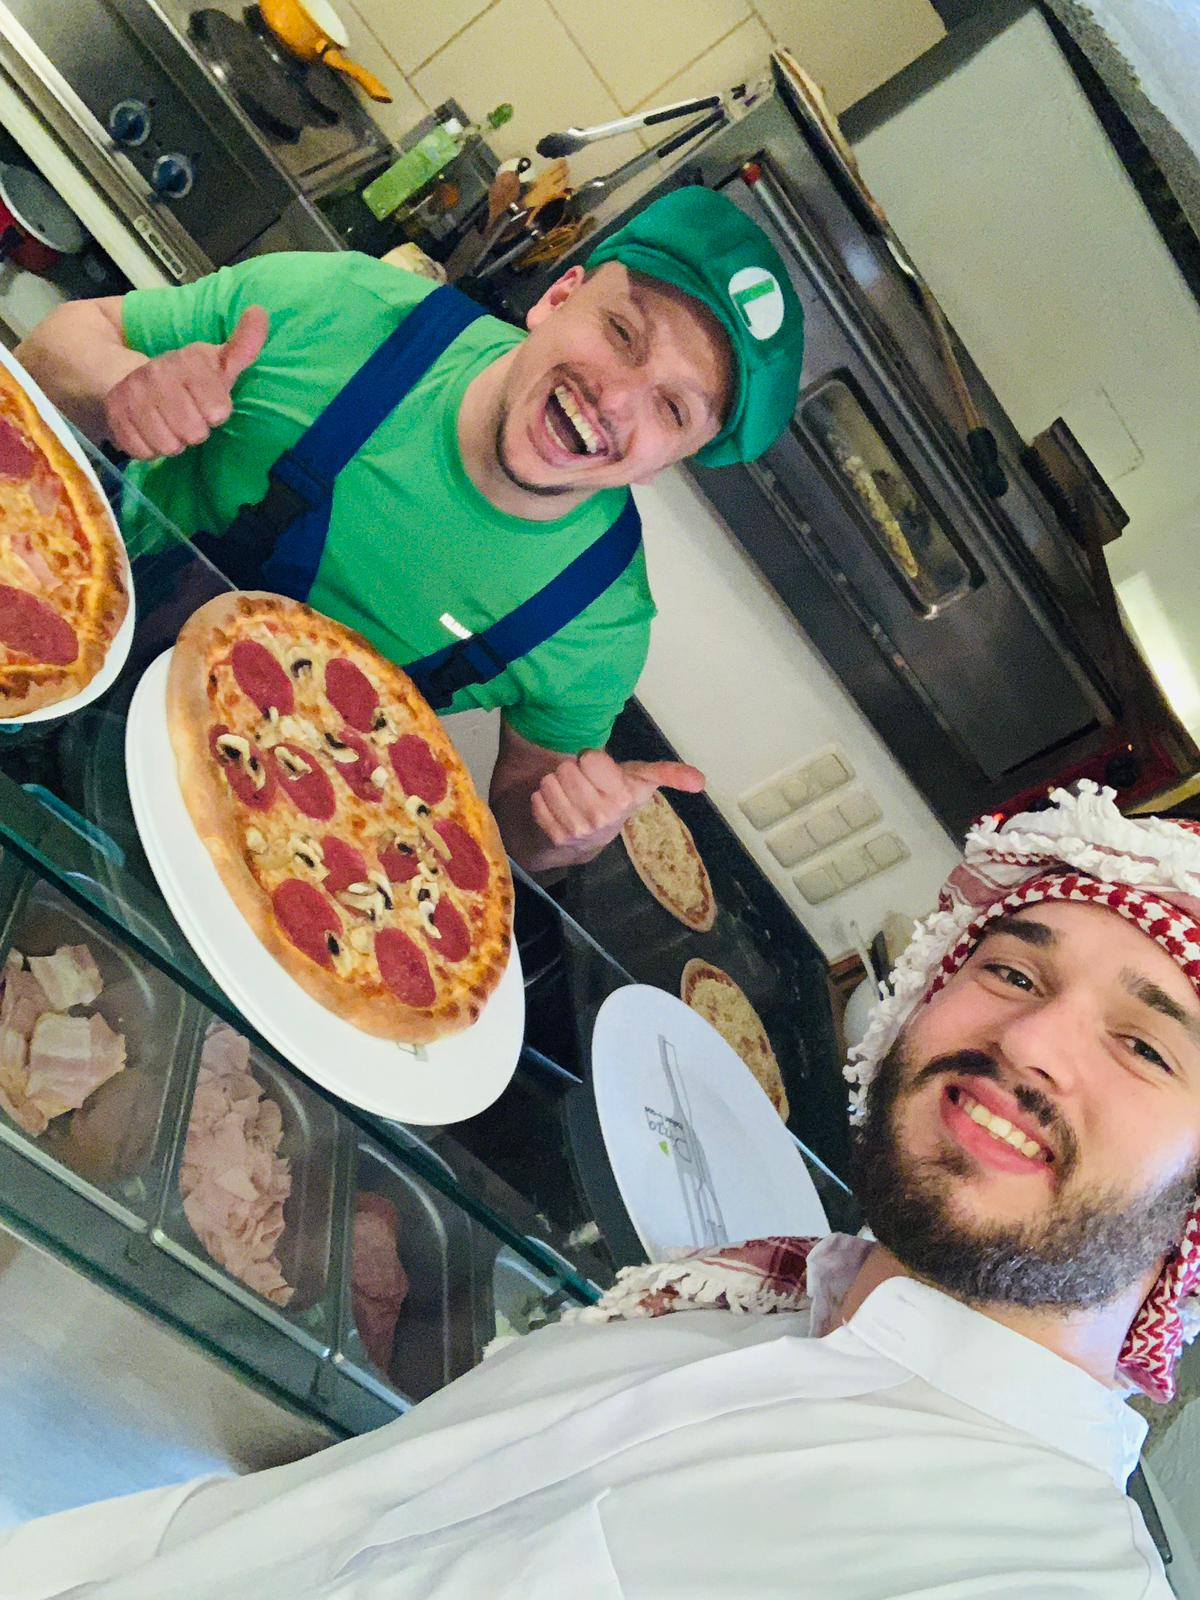 Fasching-in-Freistadt-2019-Waaggasse-Zotti-Pizza